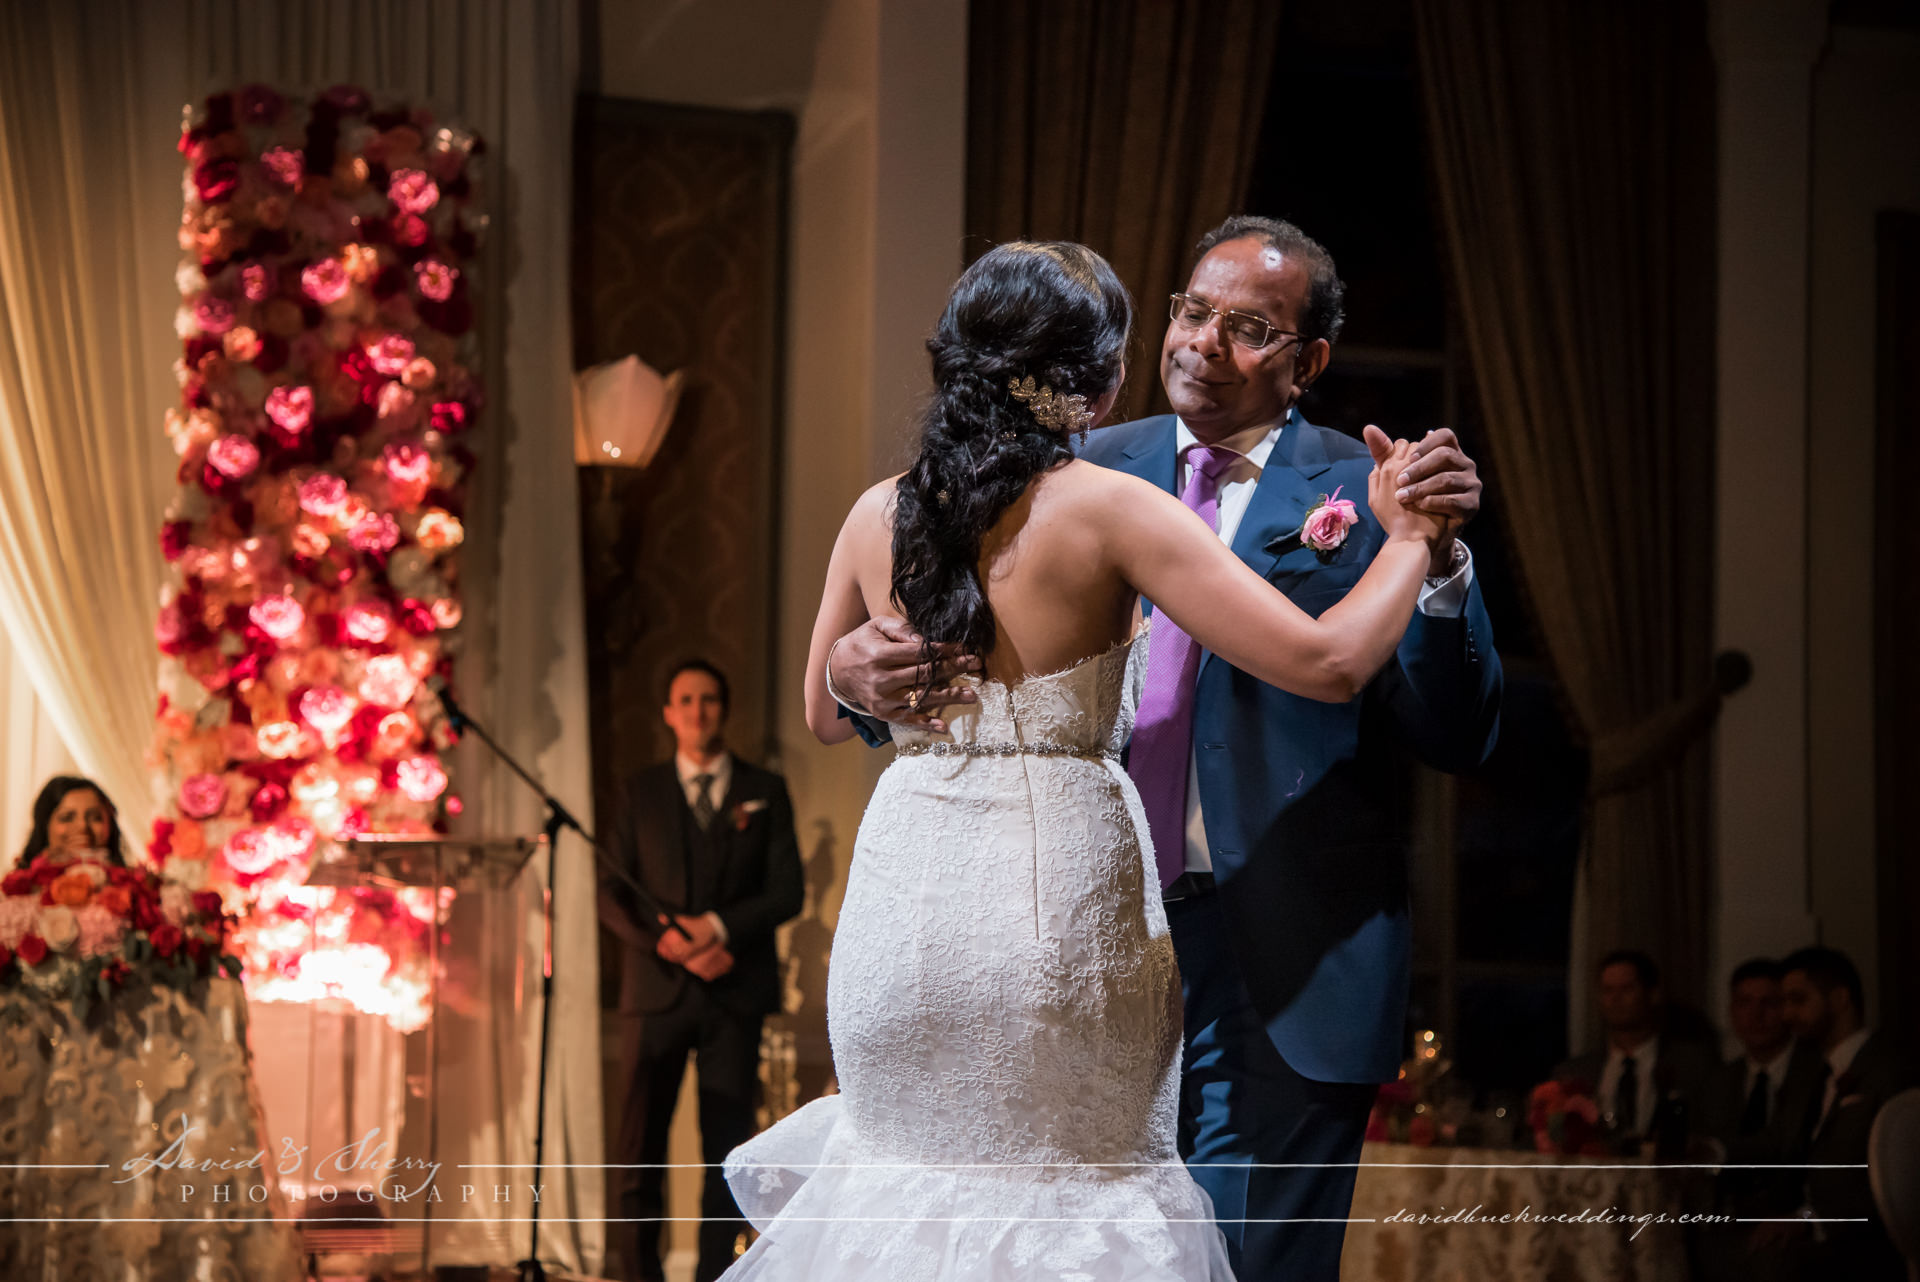 David & Sherry Photography - Liberty Grand Wedding031